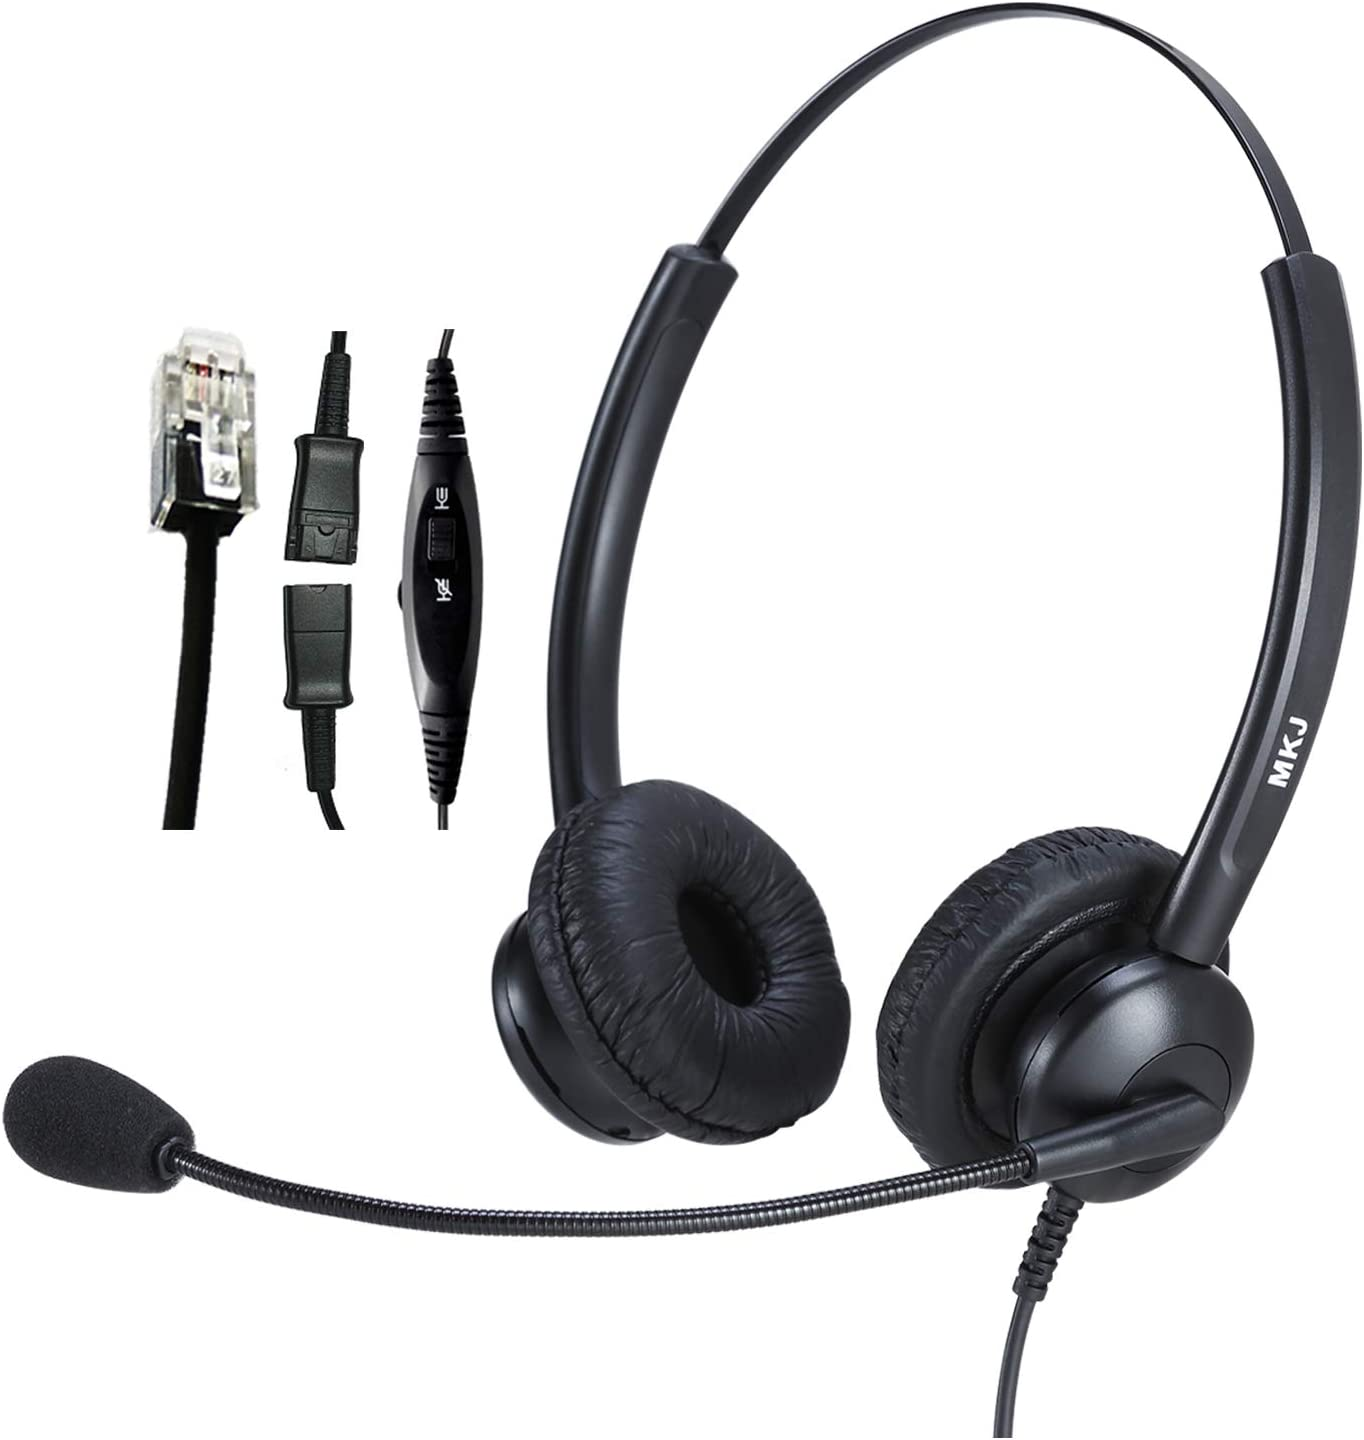 Telephone Headset with Noise Cancelling Microphone for Landline Phones Call Center Headset with Volume Control for Office Phone Plantronics Dialer Avaya 9508 Aastra Digium Fanvil Mitel Nortel